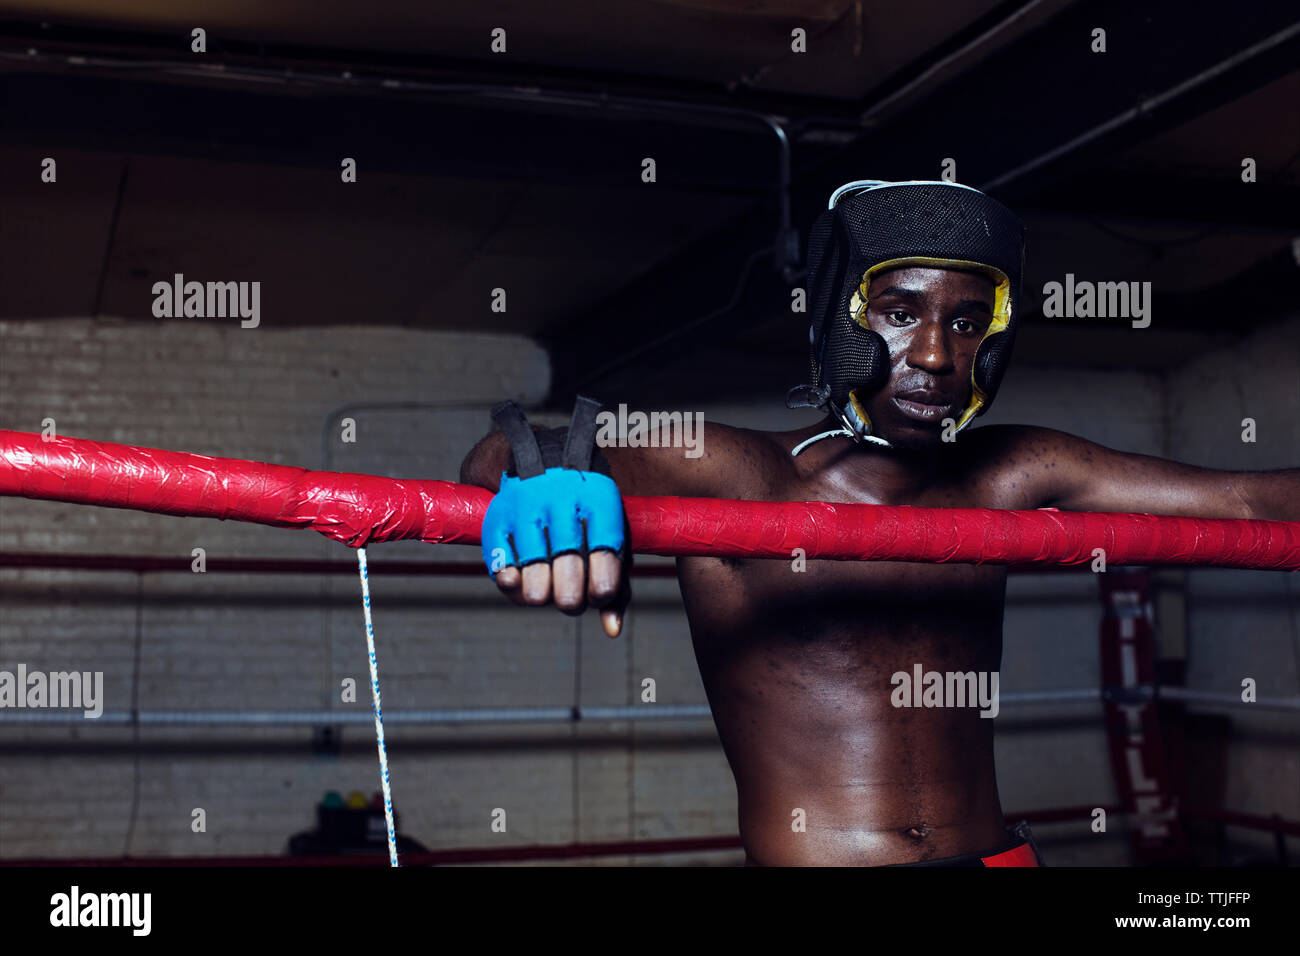 Boxer looking away while standing in boxing ring - Stock Image